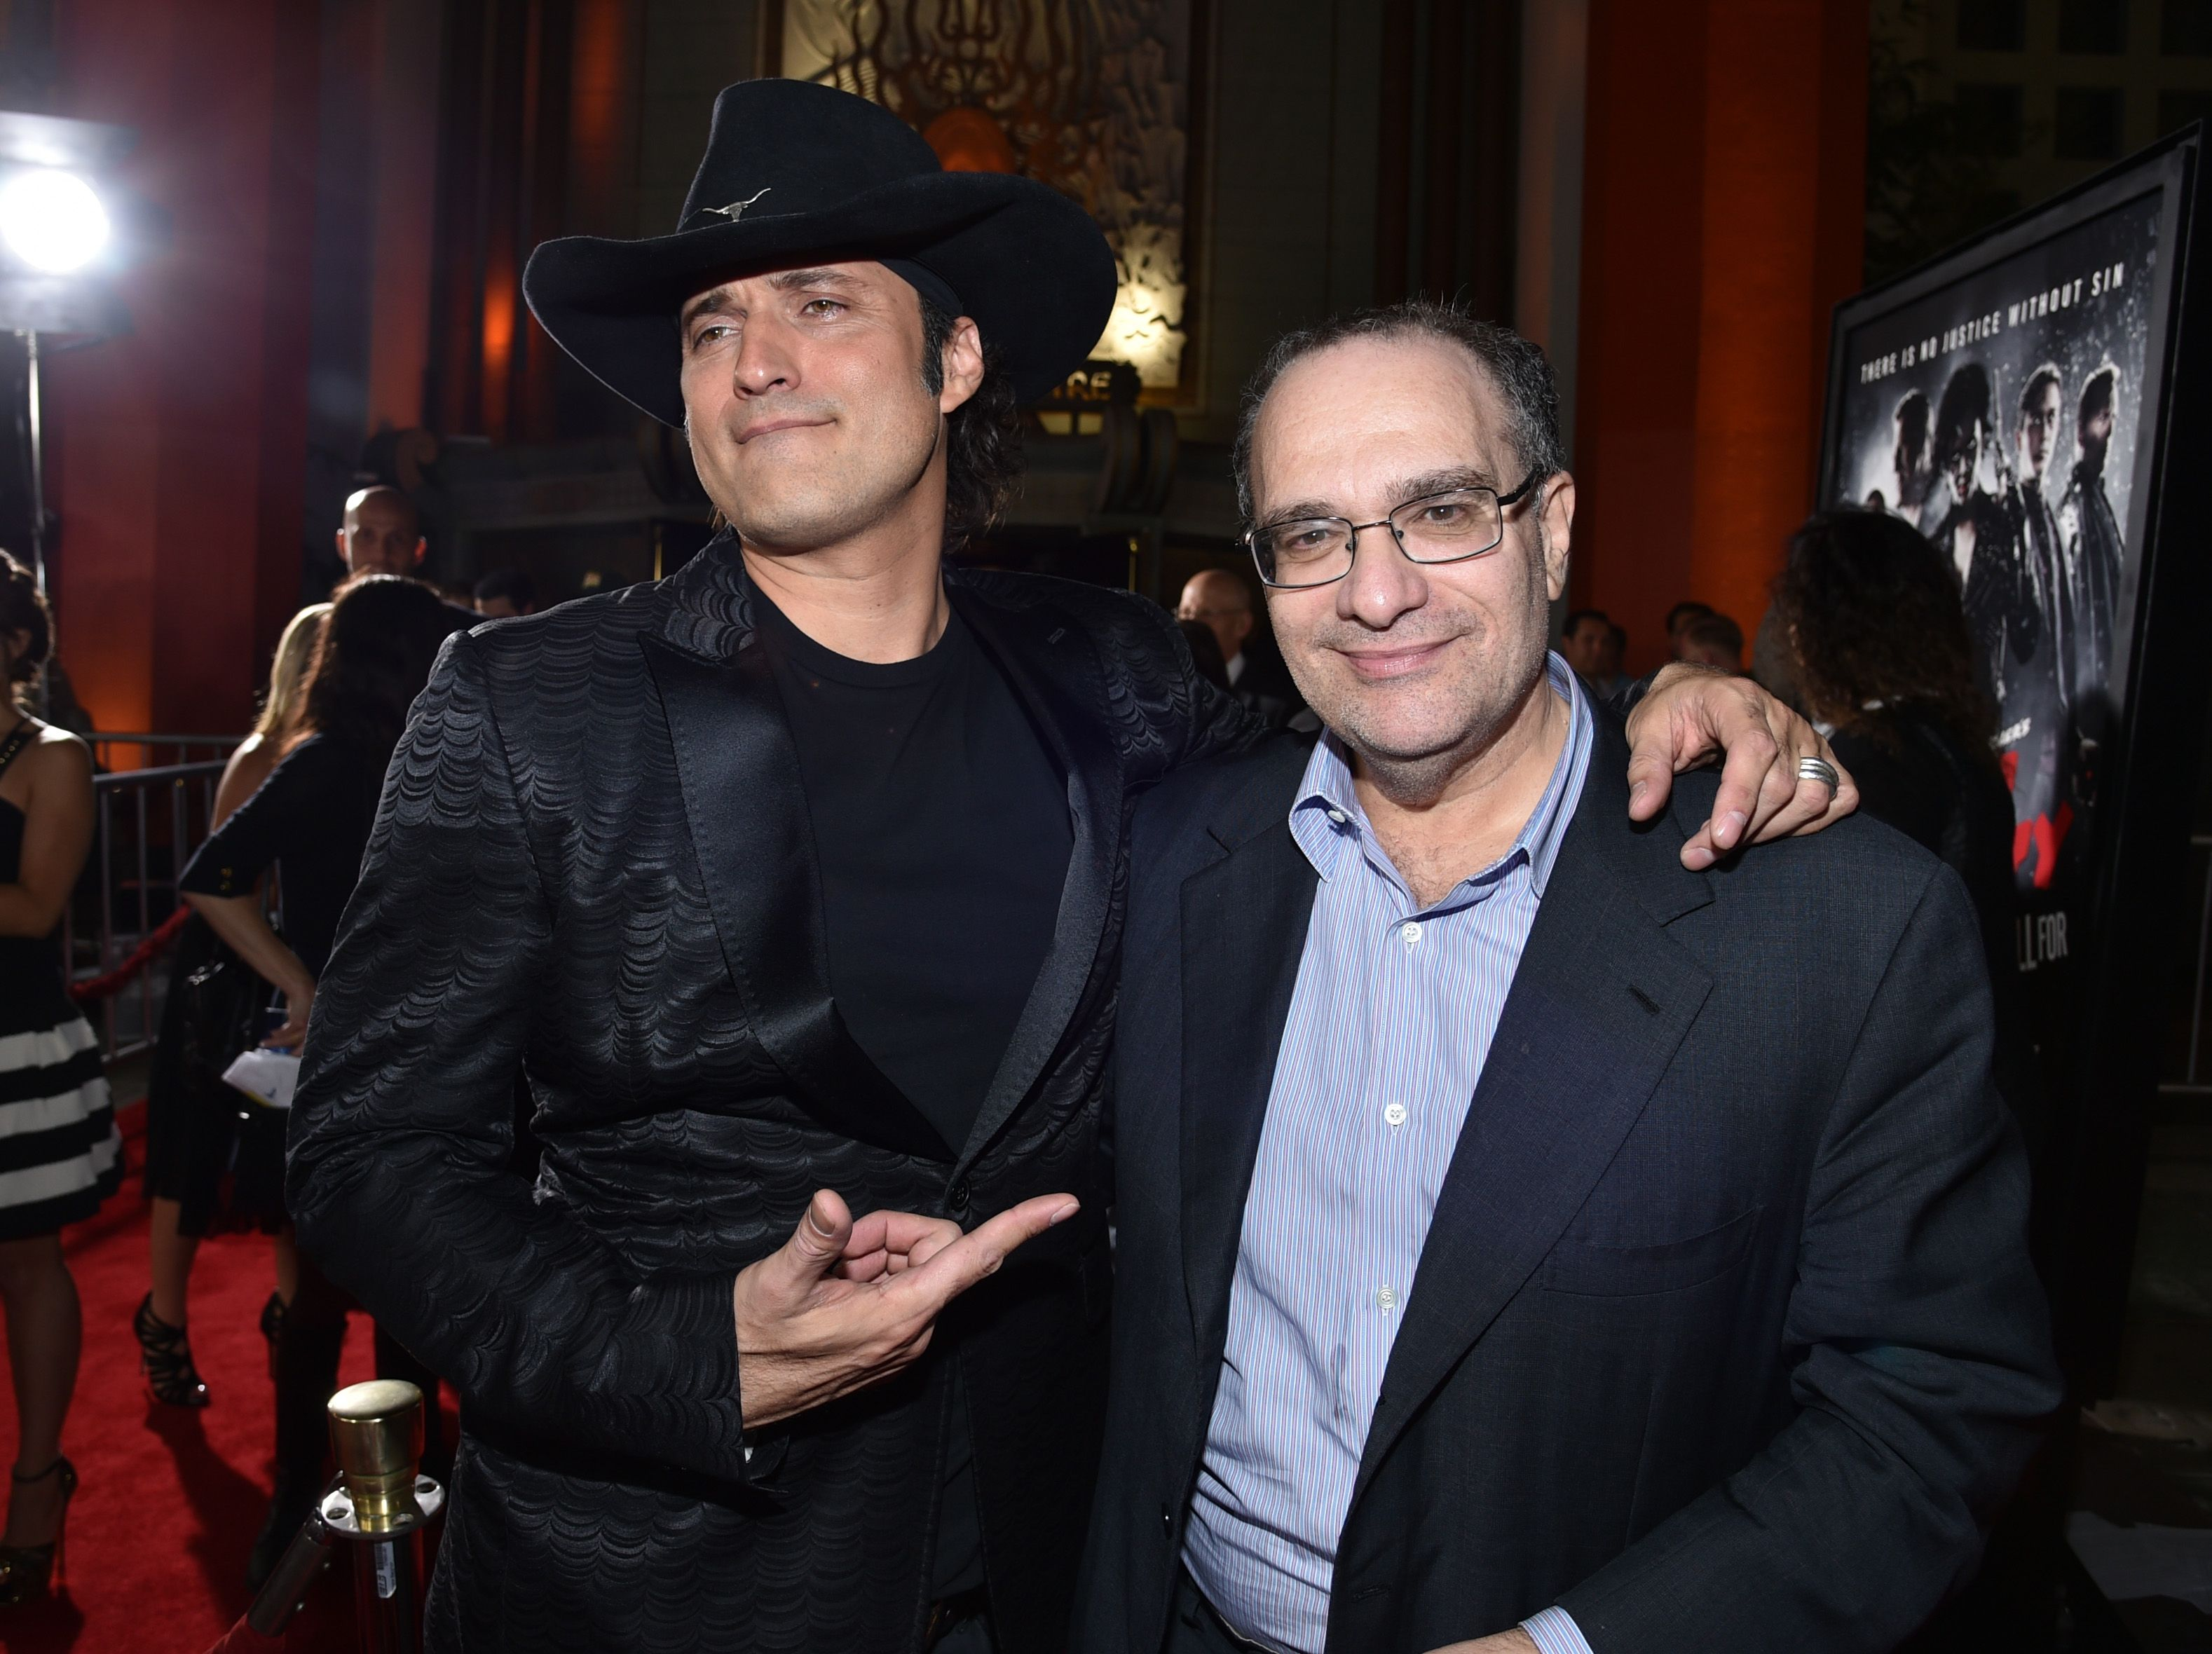 Bob Weinstein Returns to a Hollywood Much Different Than the One He Left